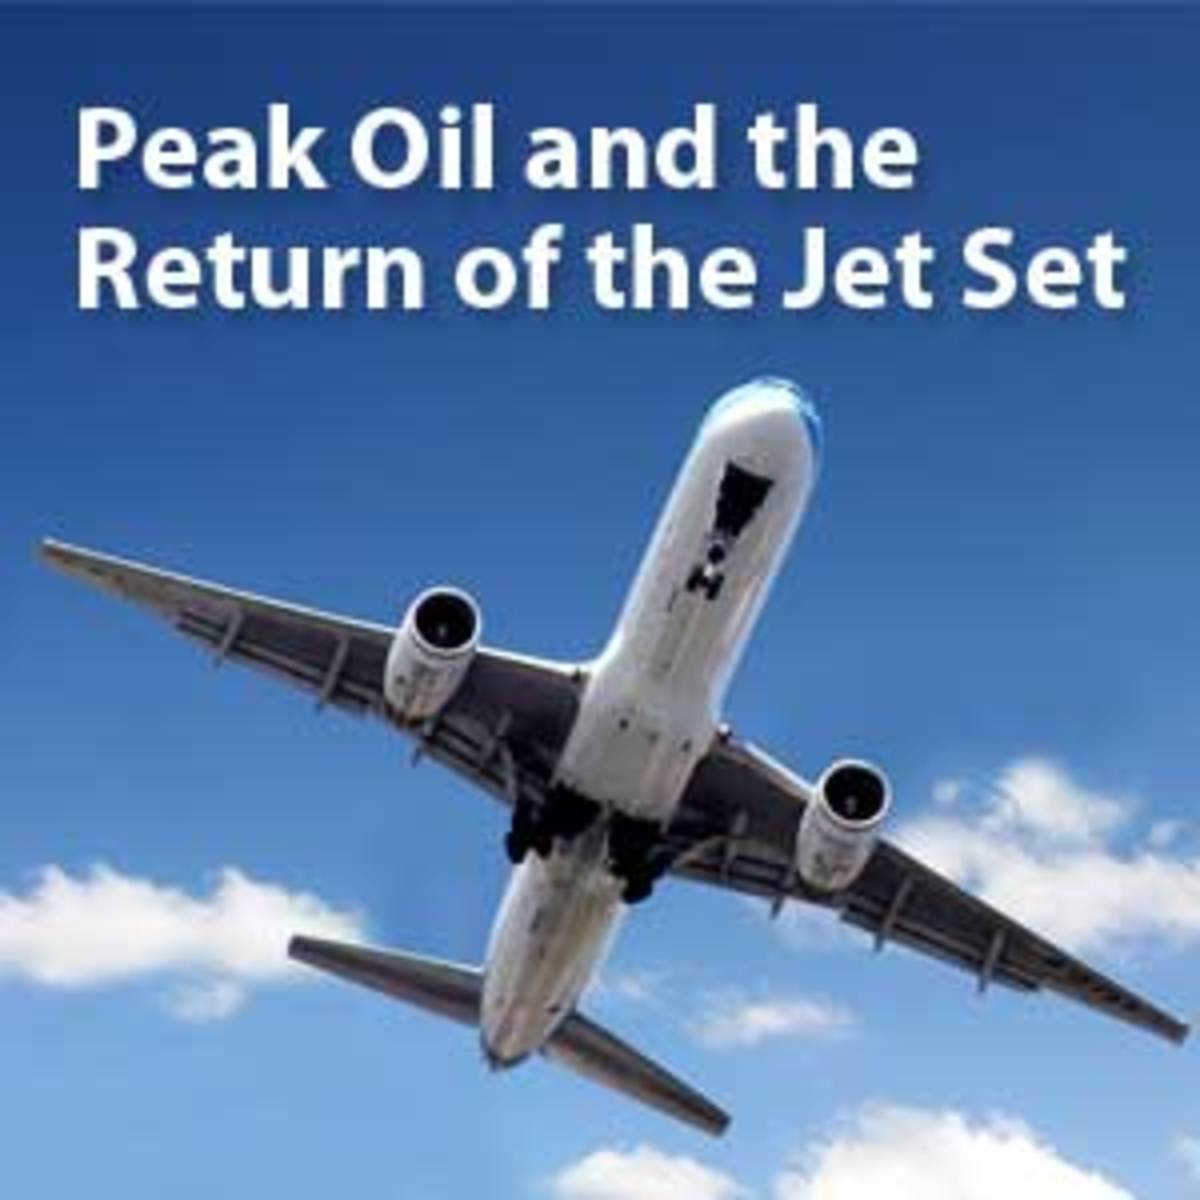 The difficulty and increasing cost of providing aviation fuel may ground many flights while winging us away from aerial democracy. Click here to see the main story.